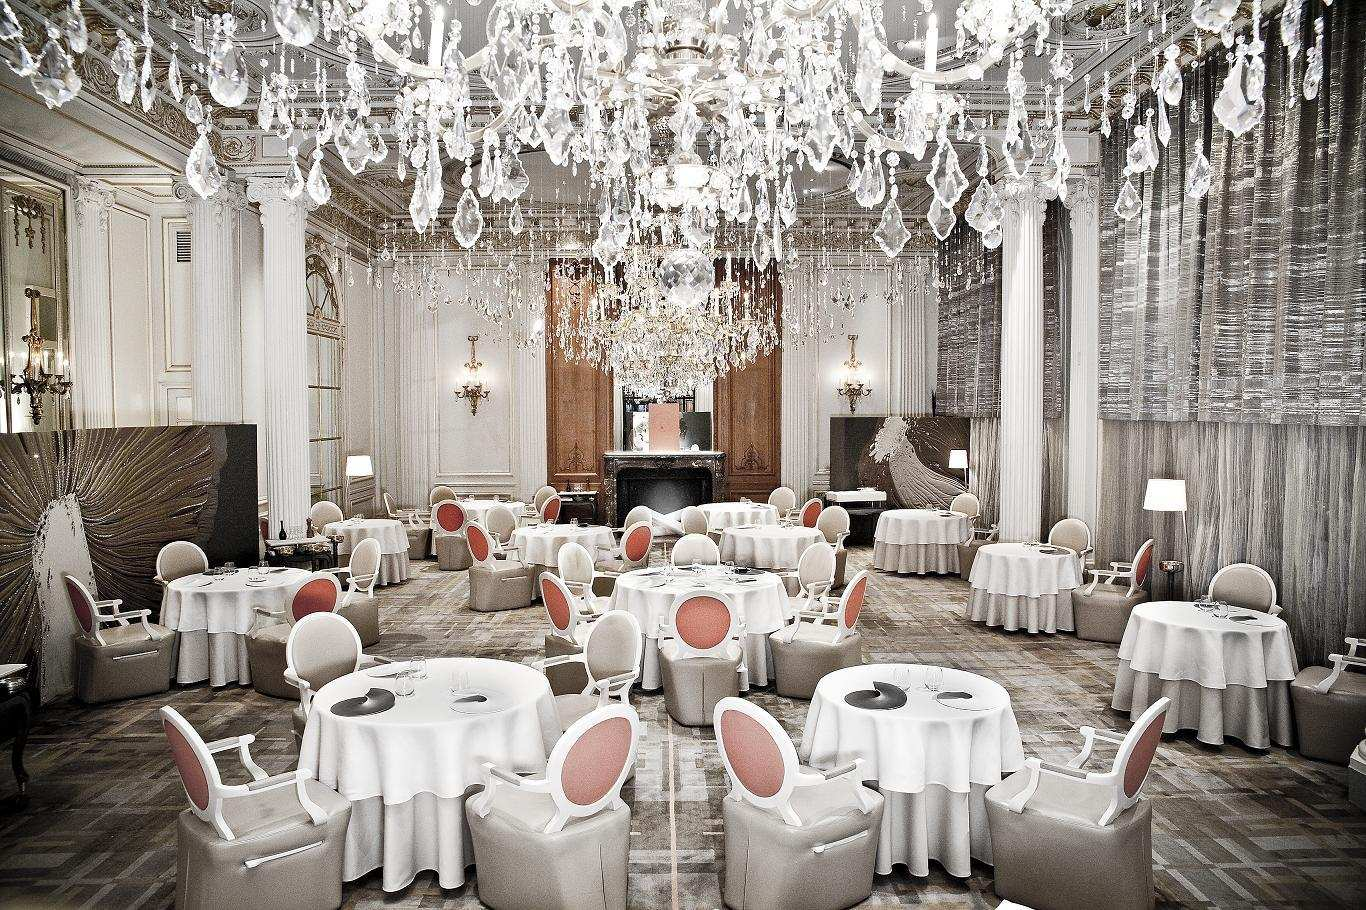 PLAZA ATHENEE, PARIS Expensive Restaurants In The World